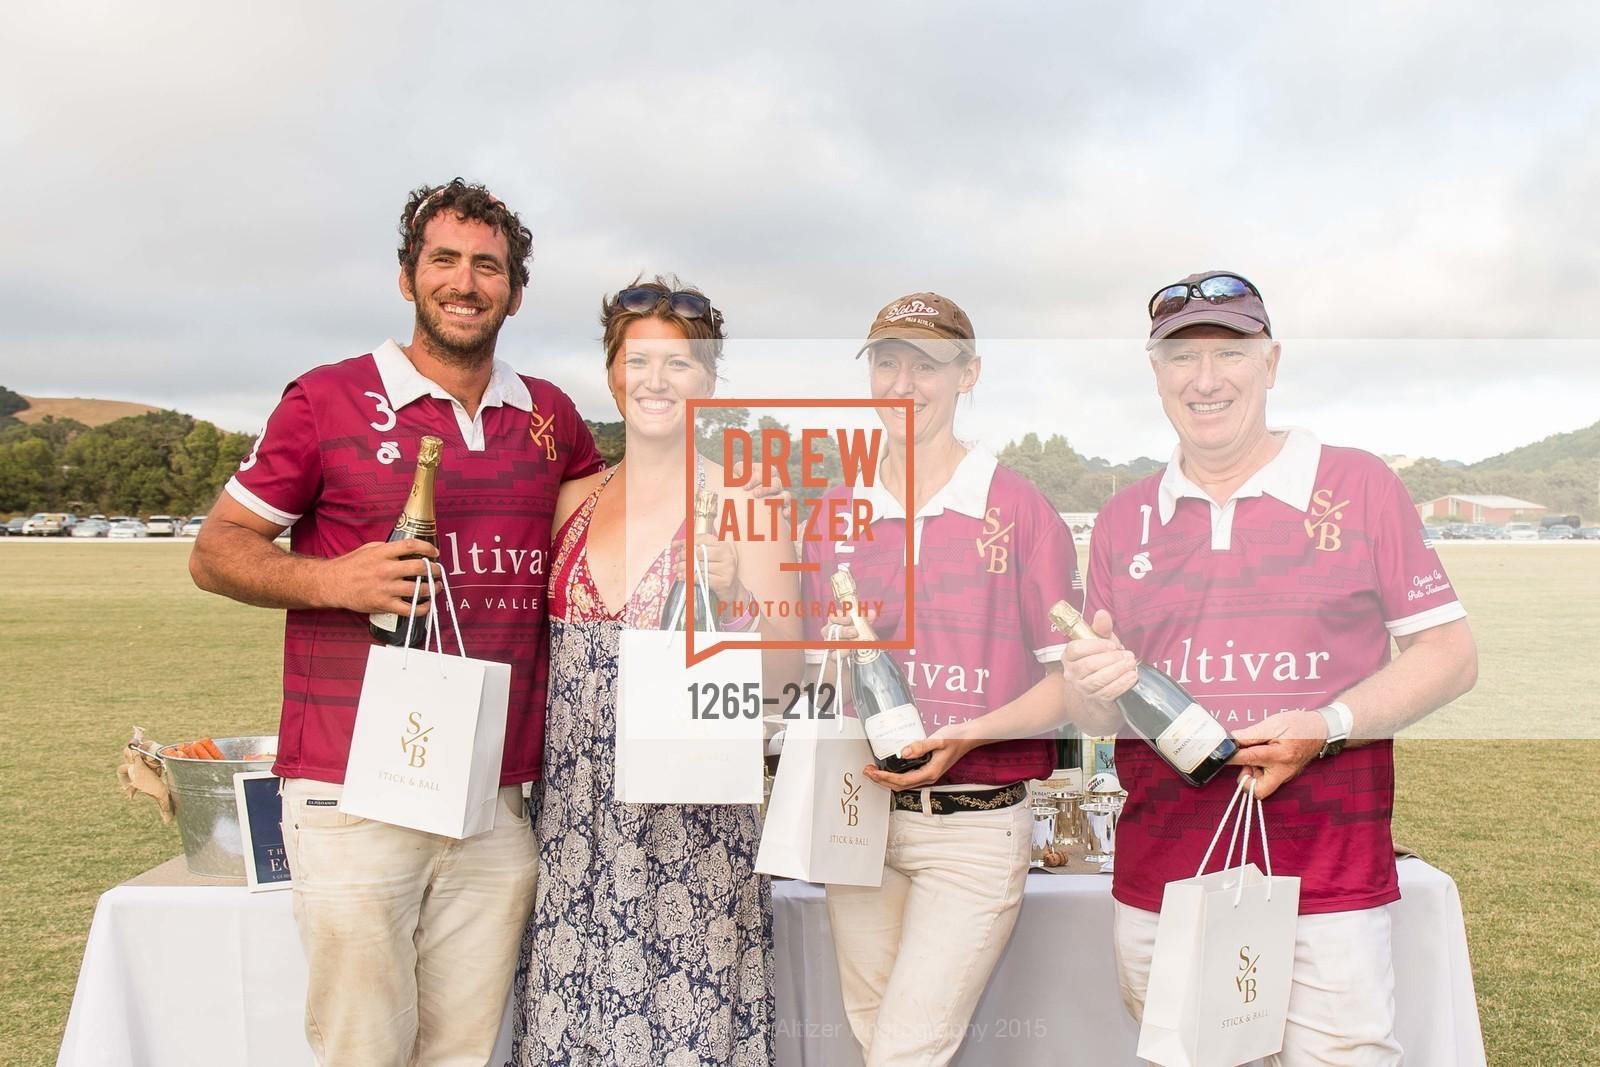 Jess Scheraga, Margo Buchanan, Heather Lake, Richard Biley, Stick & Ball Oyster Cup Polo Tournament, Cerro Pampa Polo Club, July 25th, 2015,Drew Altizer, Drew Altizer Photography, full-service agency, private events, San Francisco photographer, photographer california